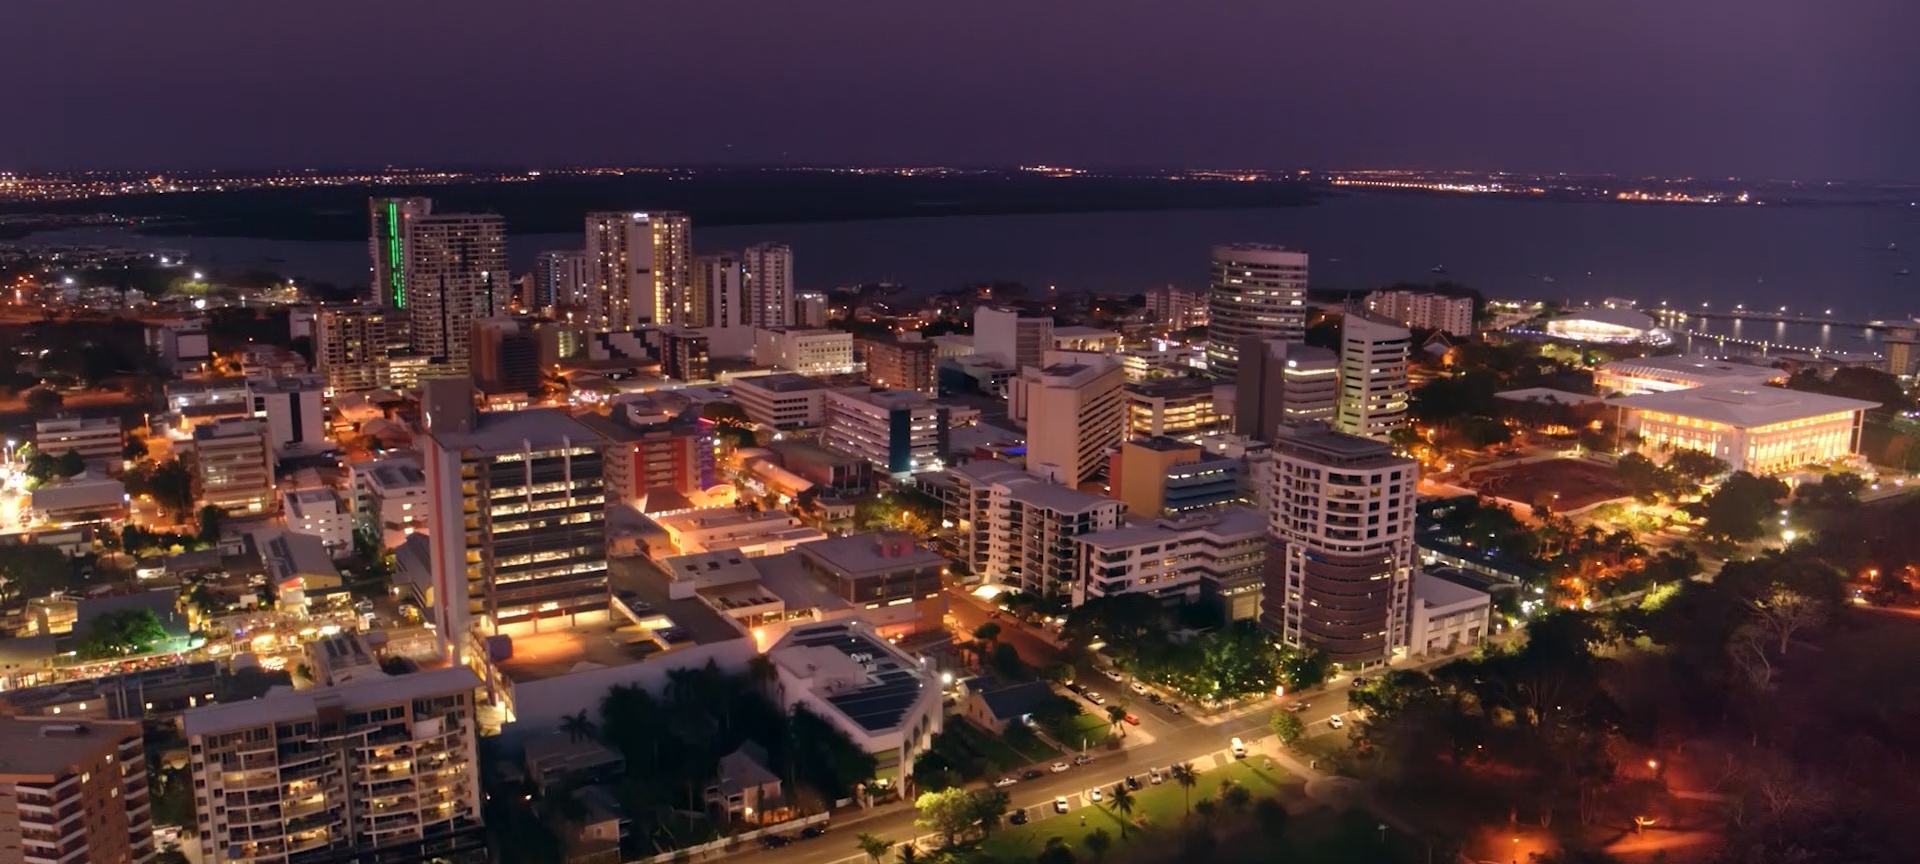 Darwin city at night